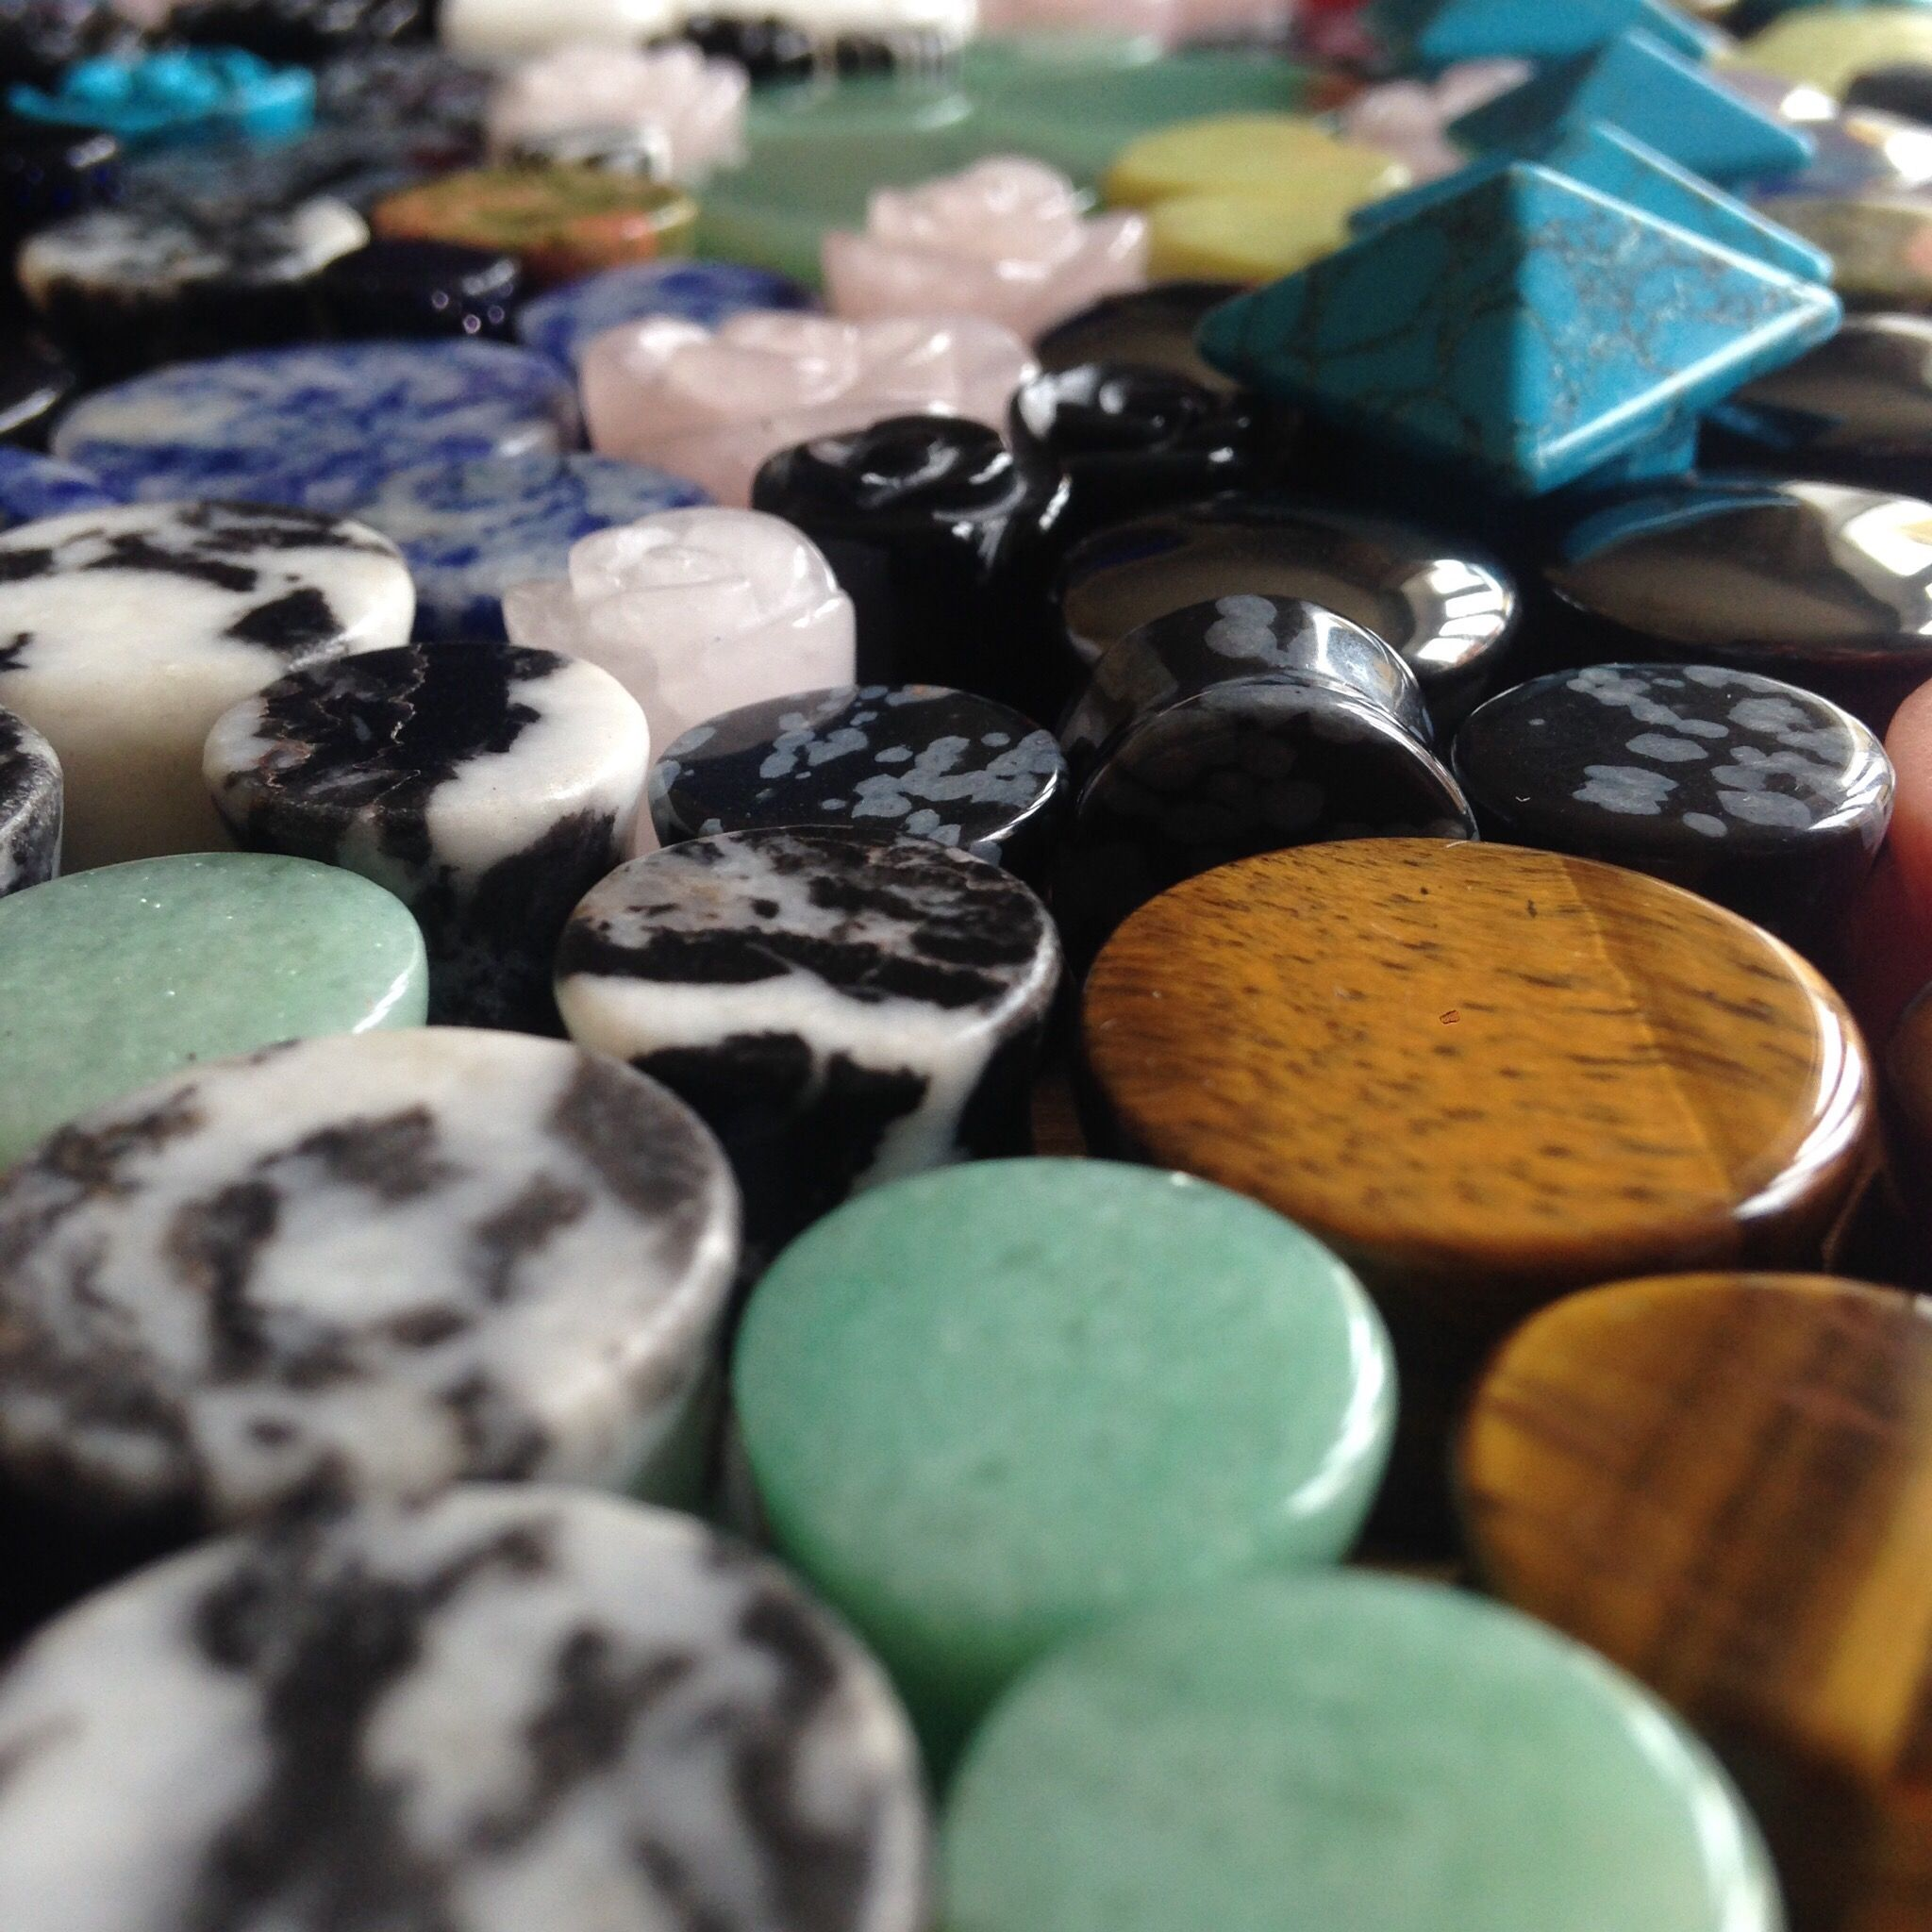 30% off all stone plugs at www.justeros.com/ #plugs #tunnels #gauges use code: stone30